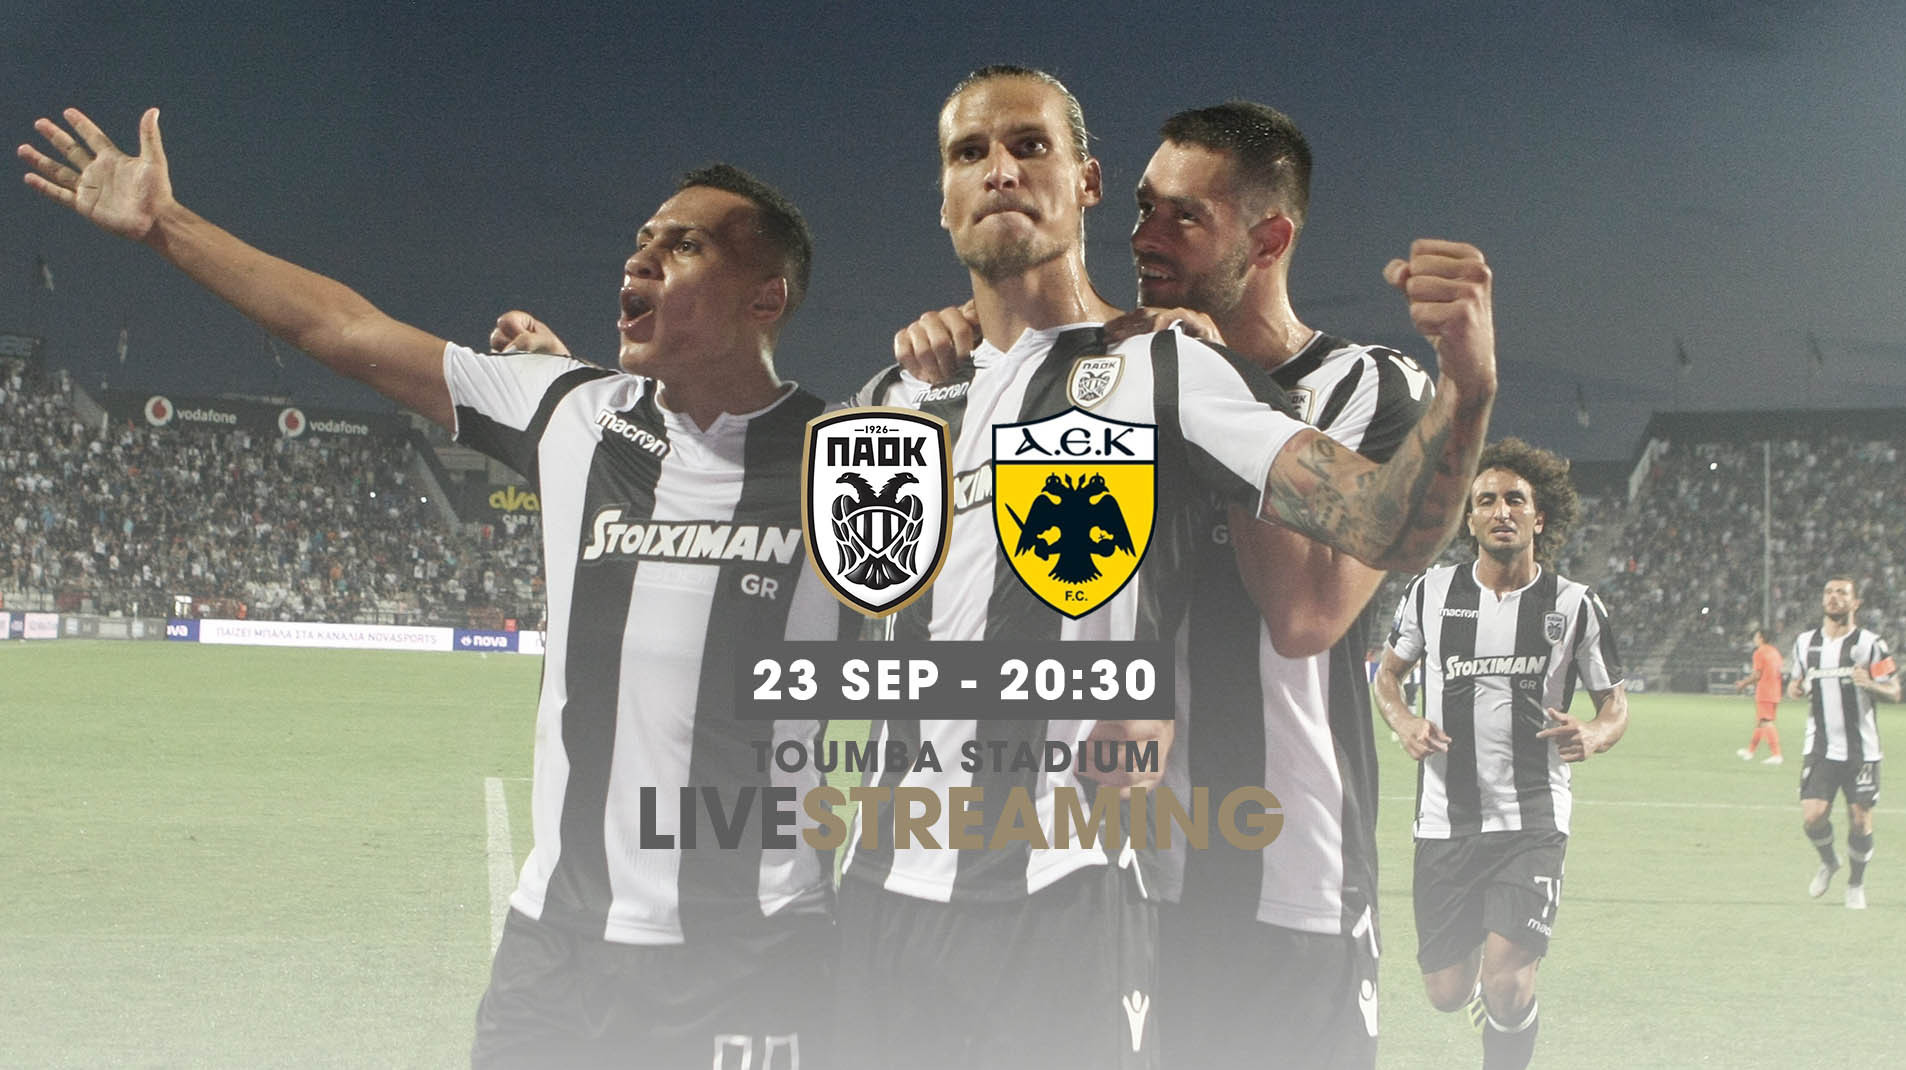 PAOK FC-AEK FC [live]